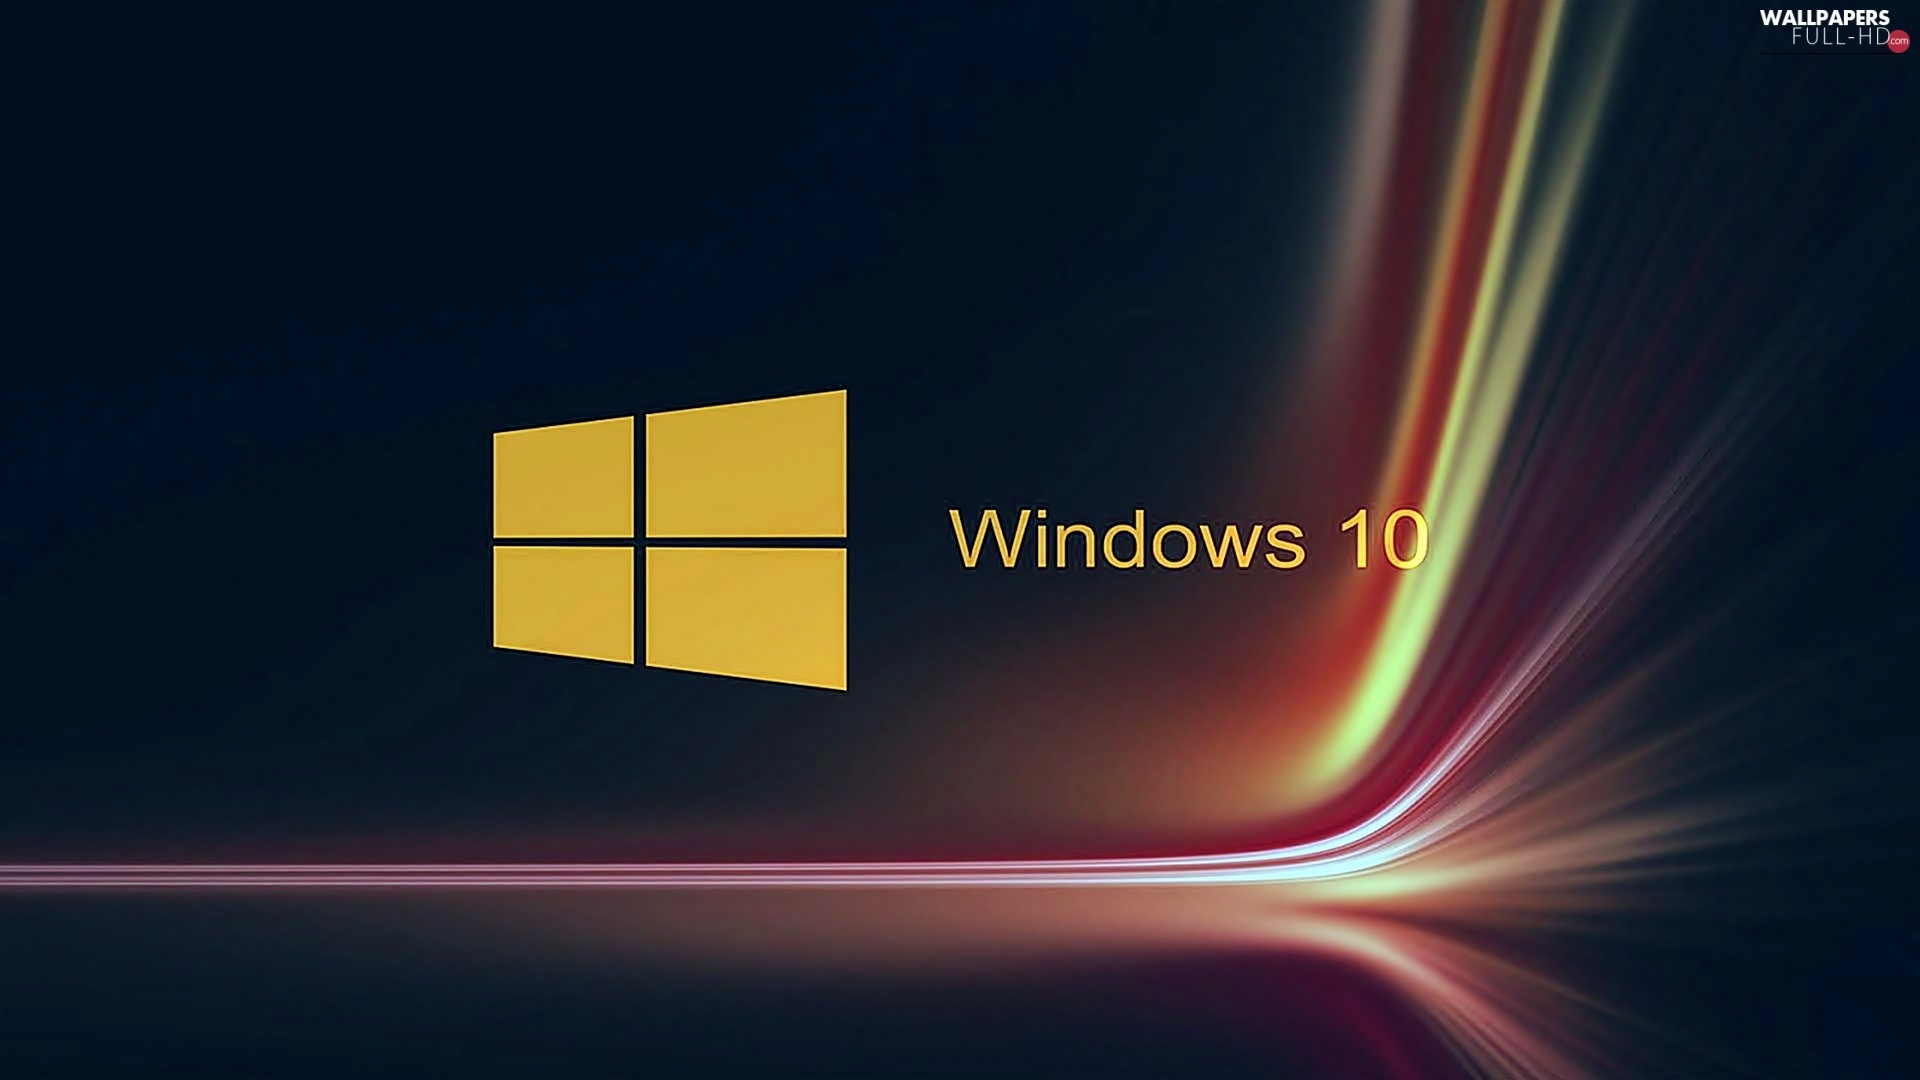 logo, Windows 10, system, operating